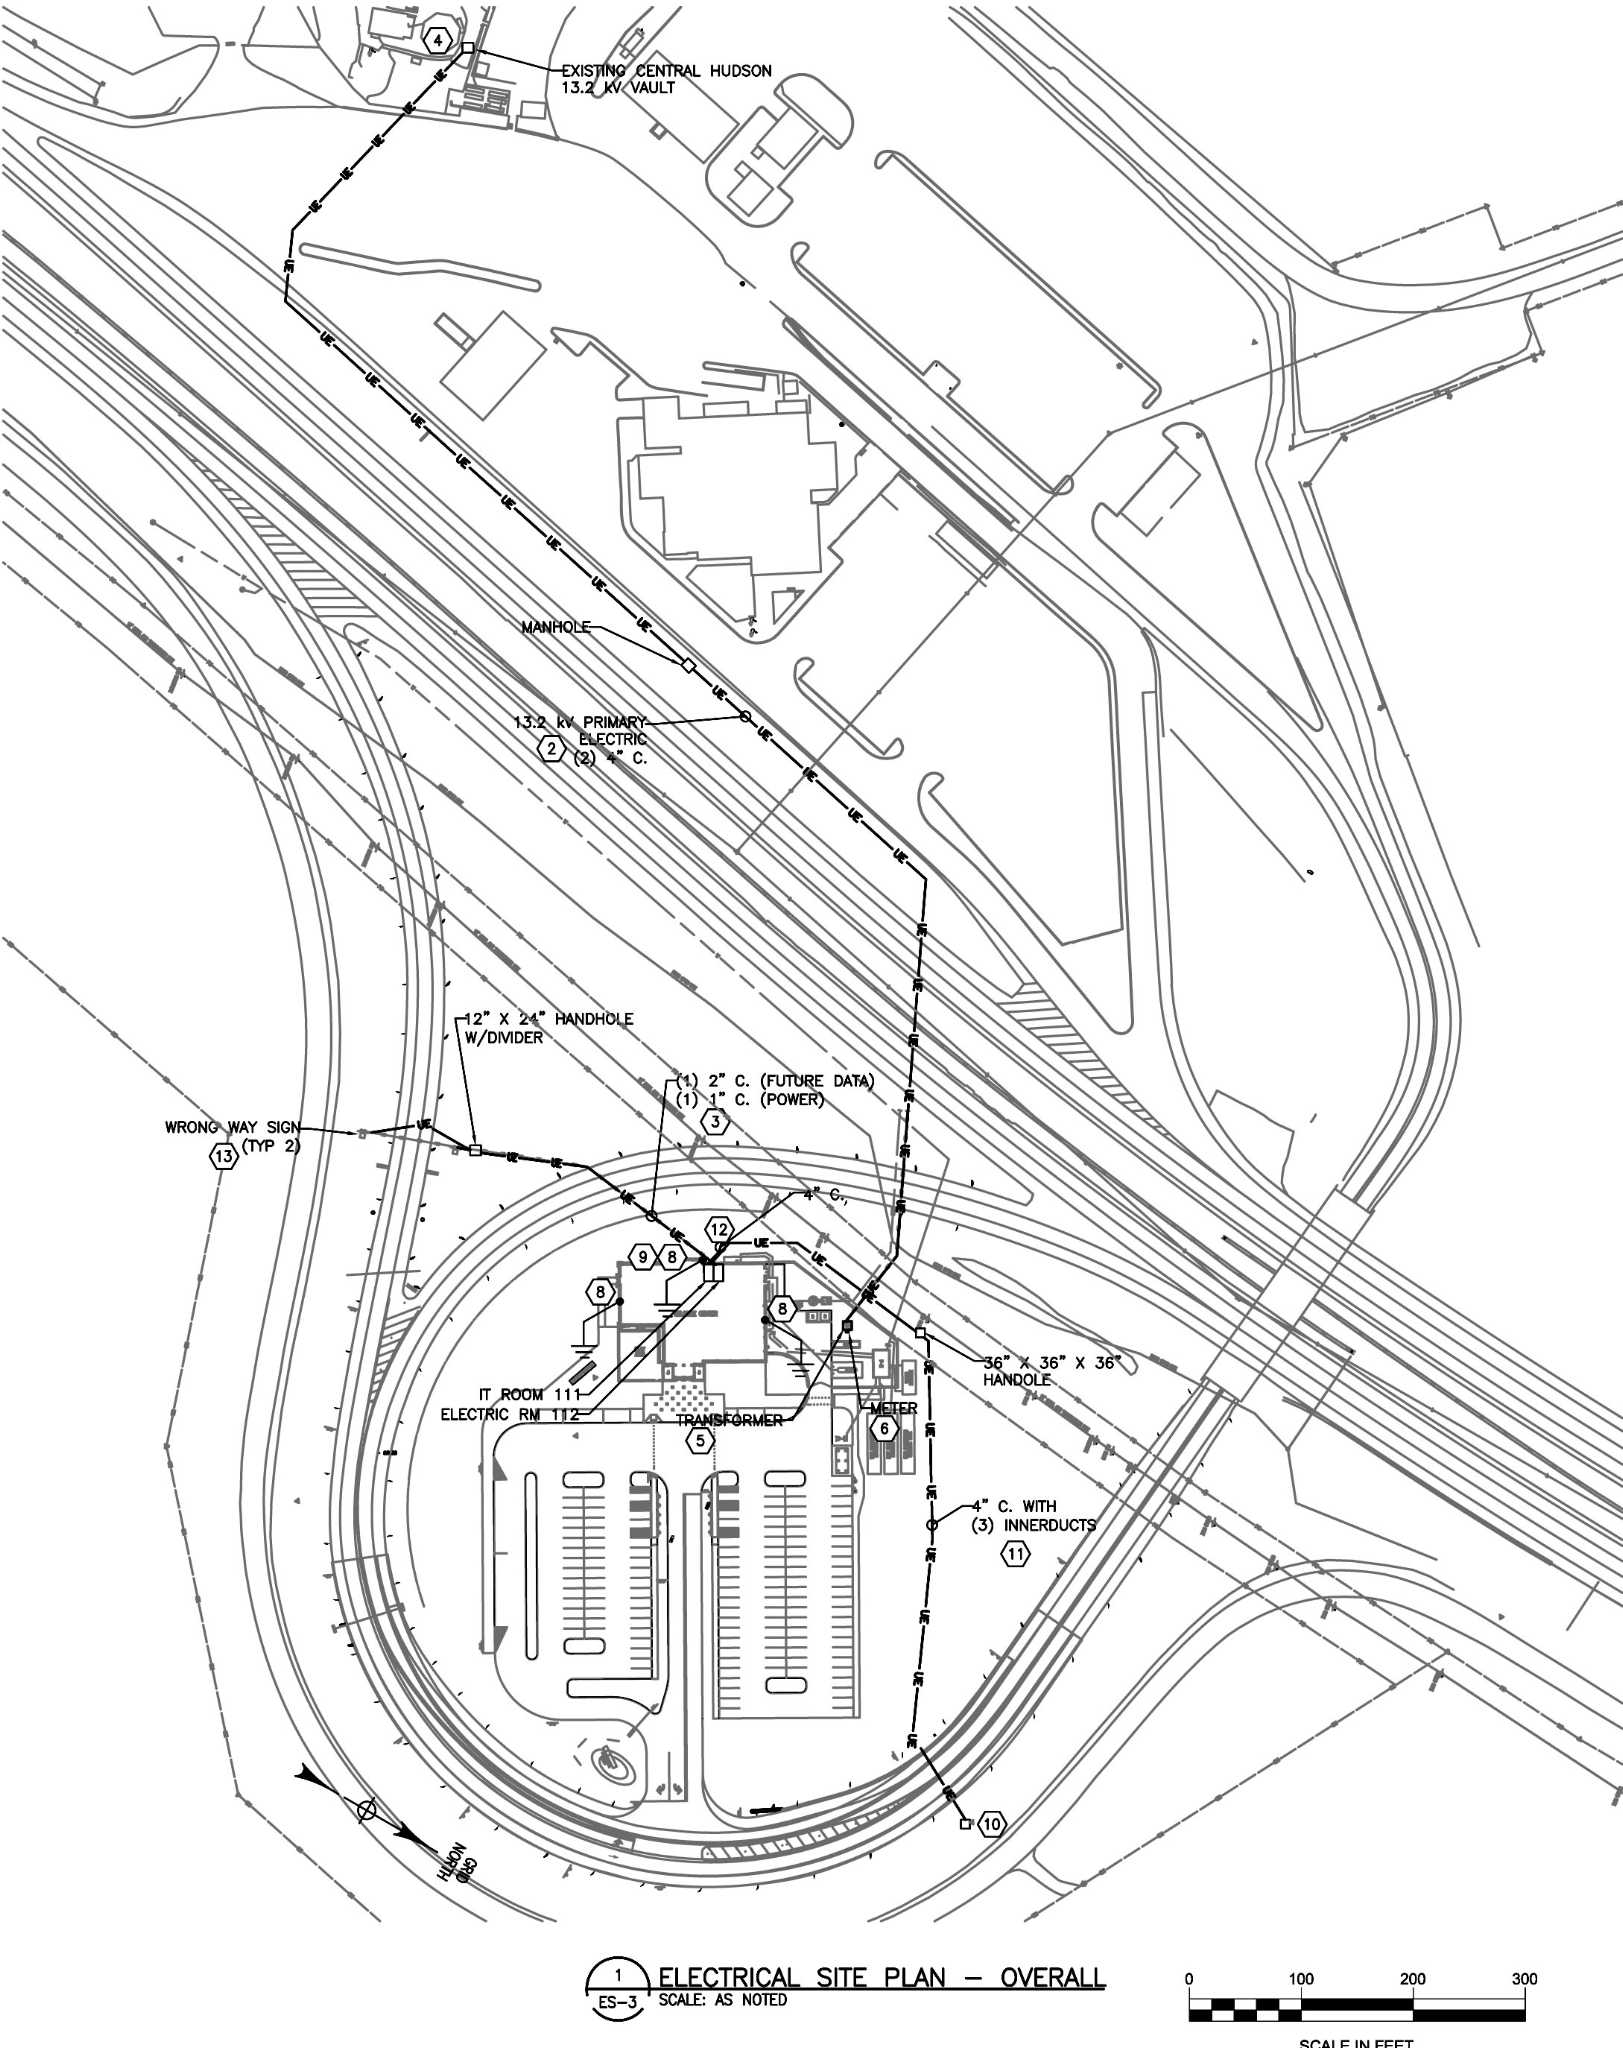 Welcome center planned for New Baltimore thruway plaza